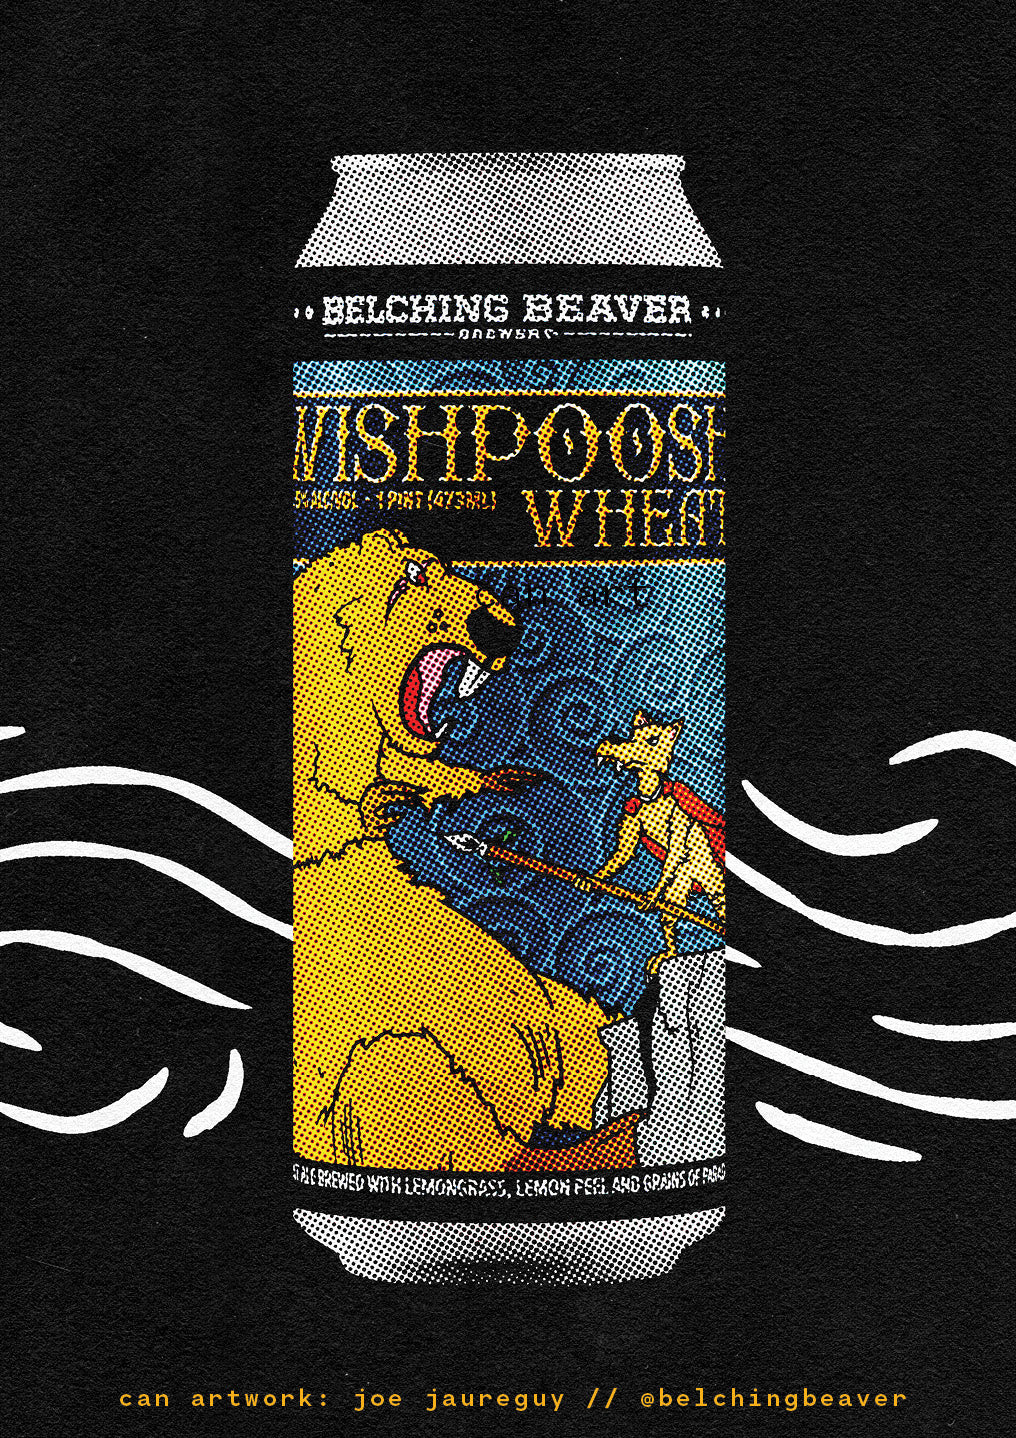 Wishpoosh Wheat, a refreshing wheat ale made with real lemons by Belching Beaver Brewery